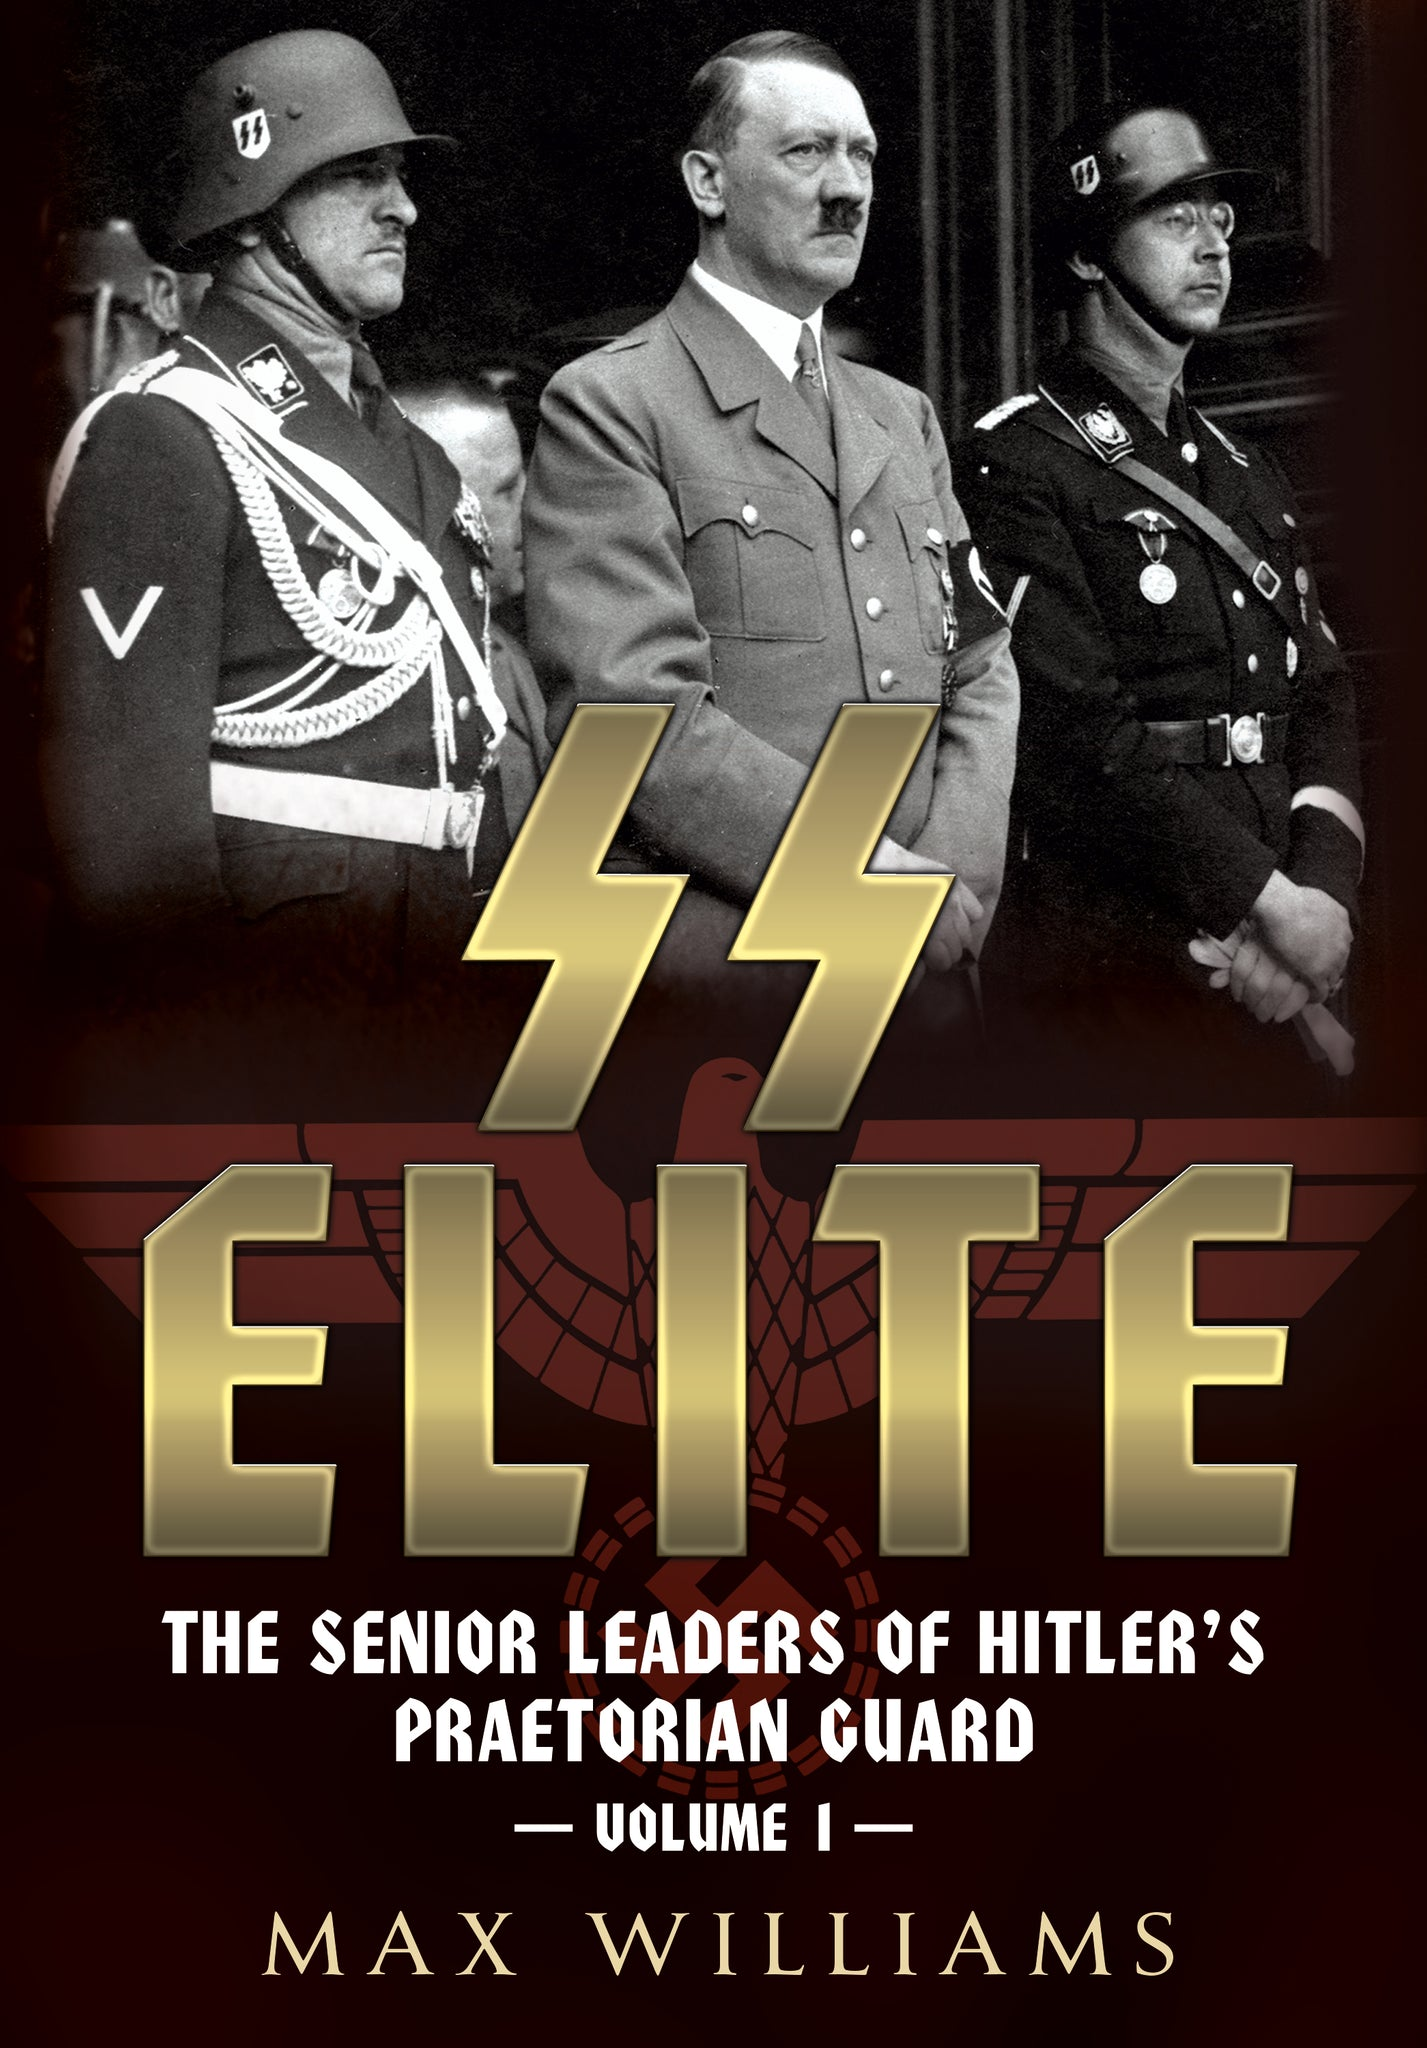 SS Elite: The Senior Leaders of Hitler's Praetorian Guard Volume 1: A-J